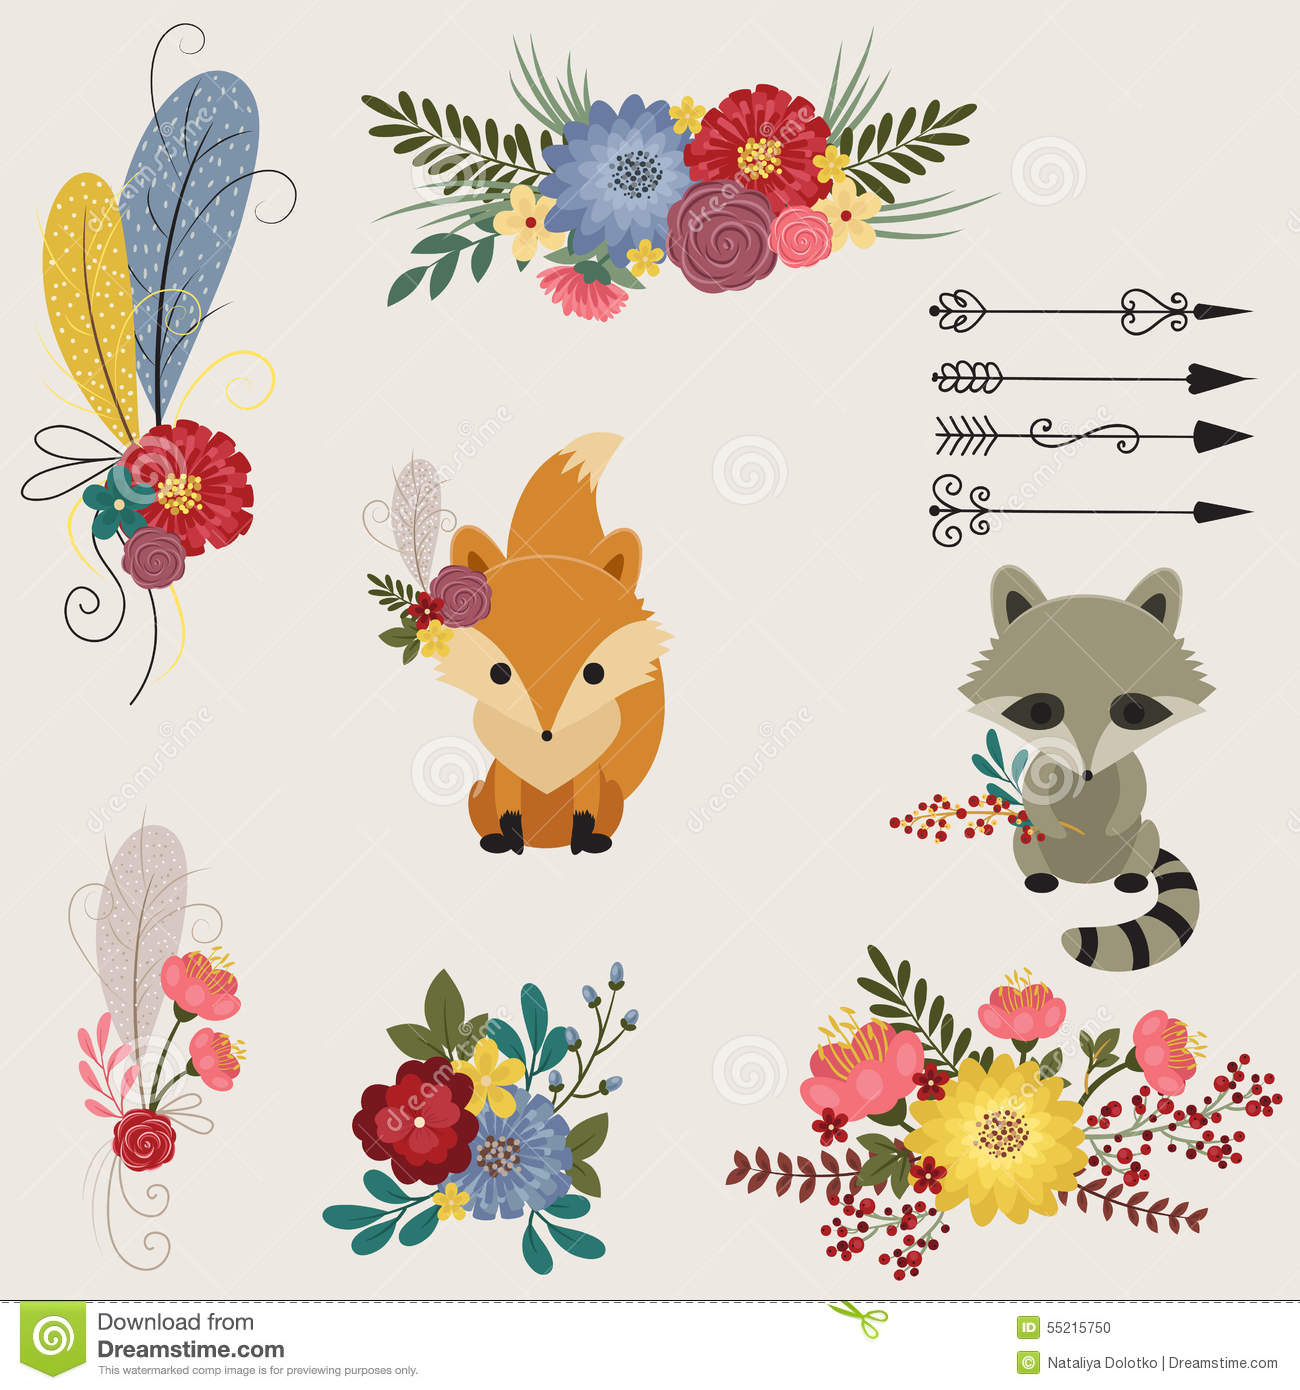 Floral and animals icons stock vector  Illustration of leaf